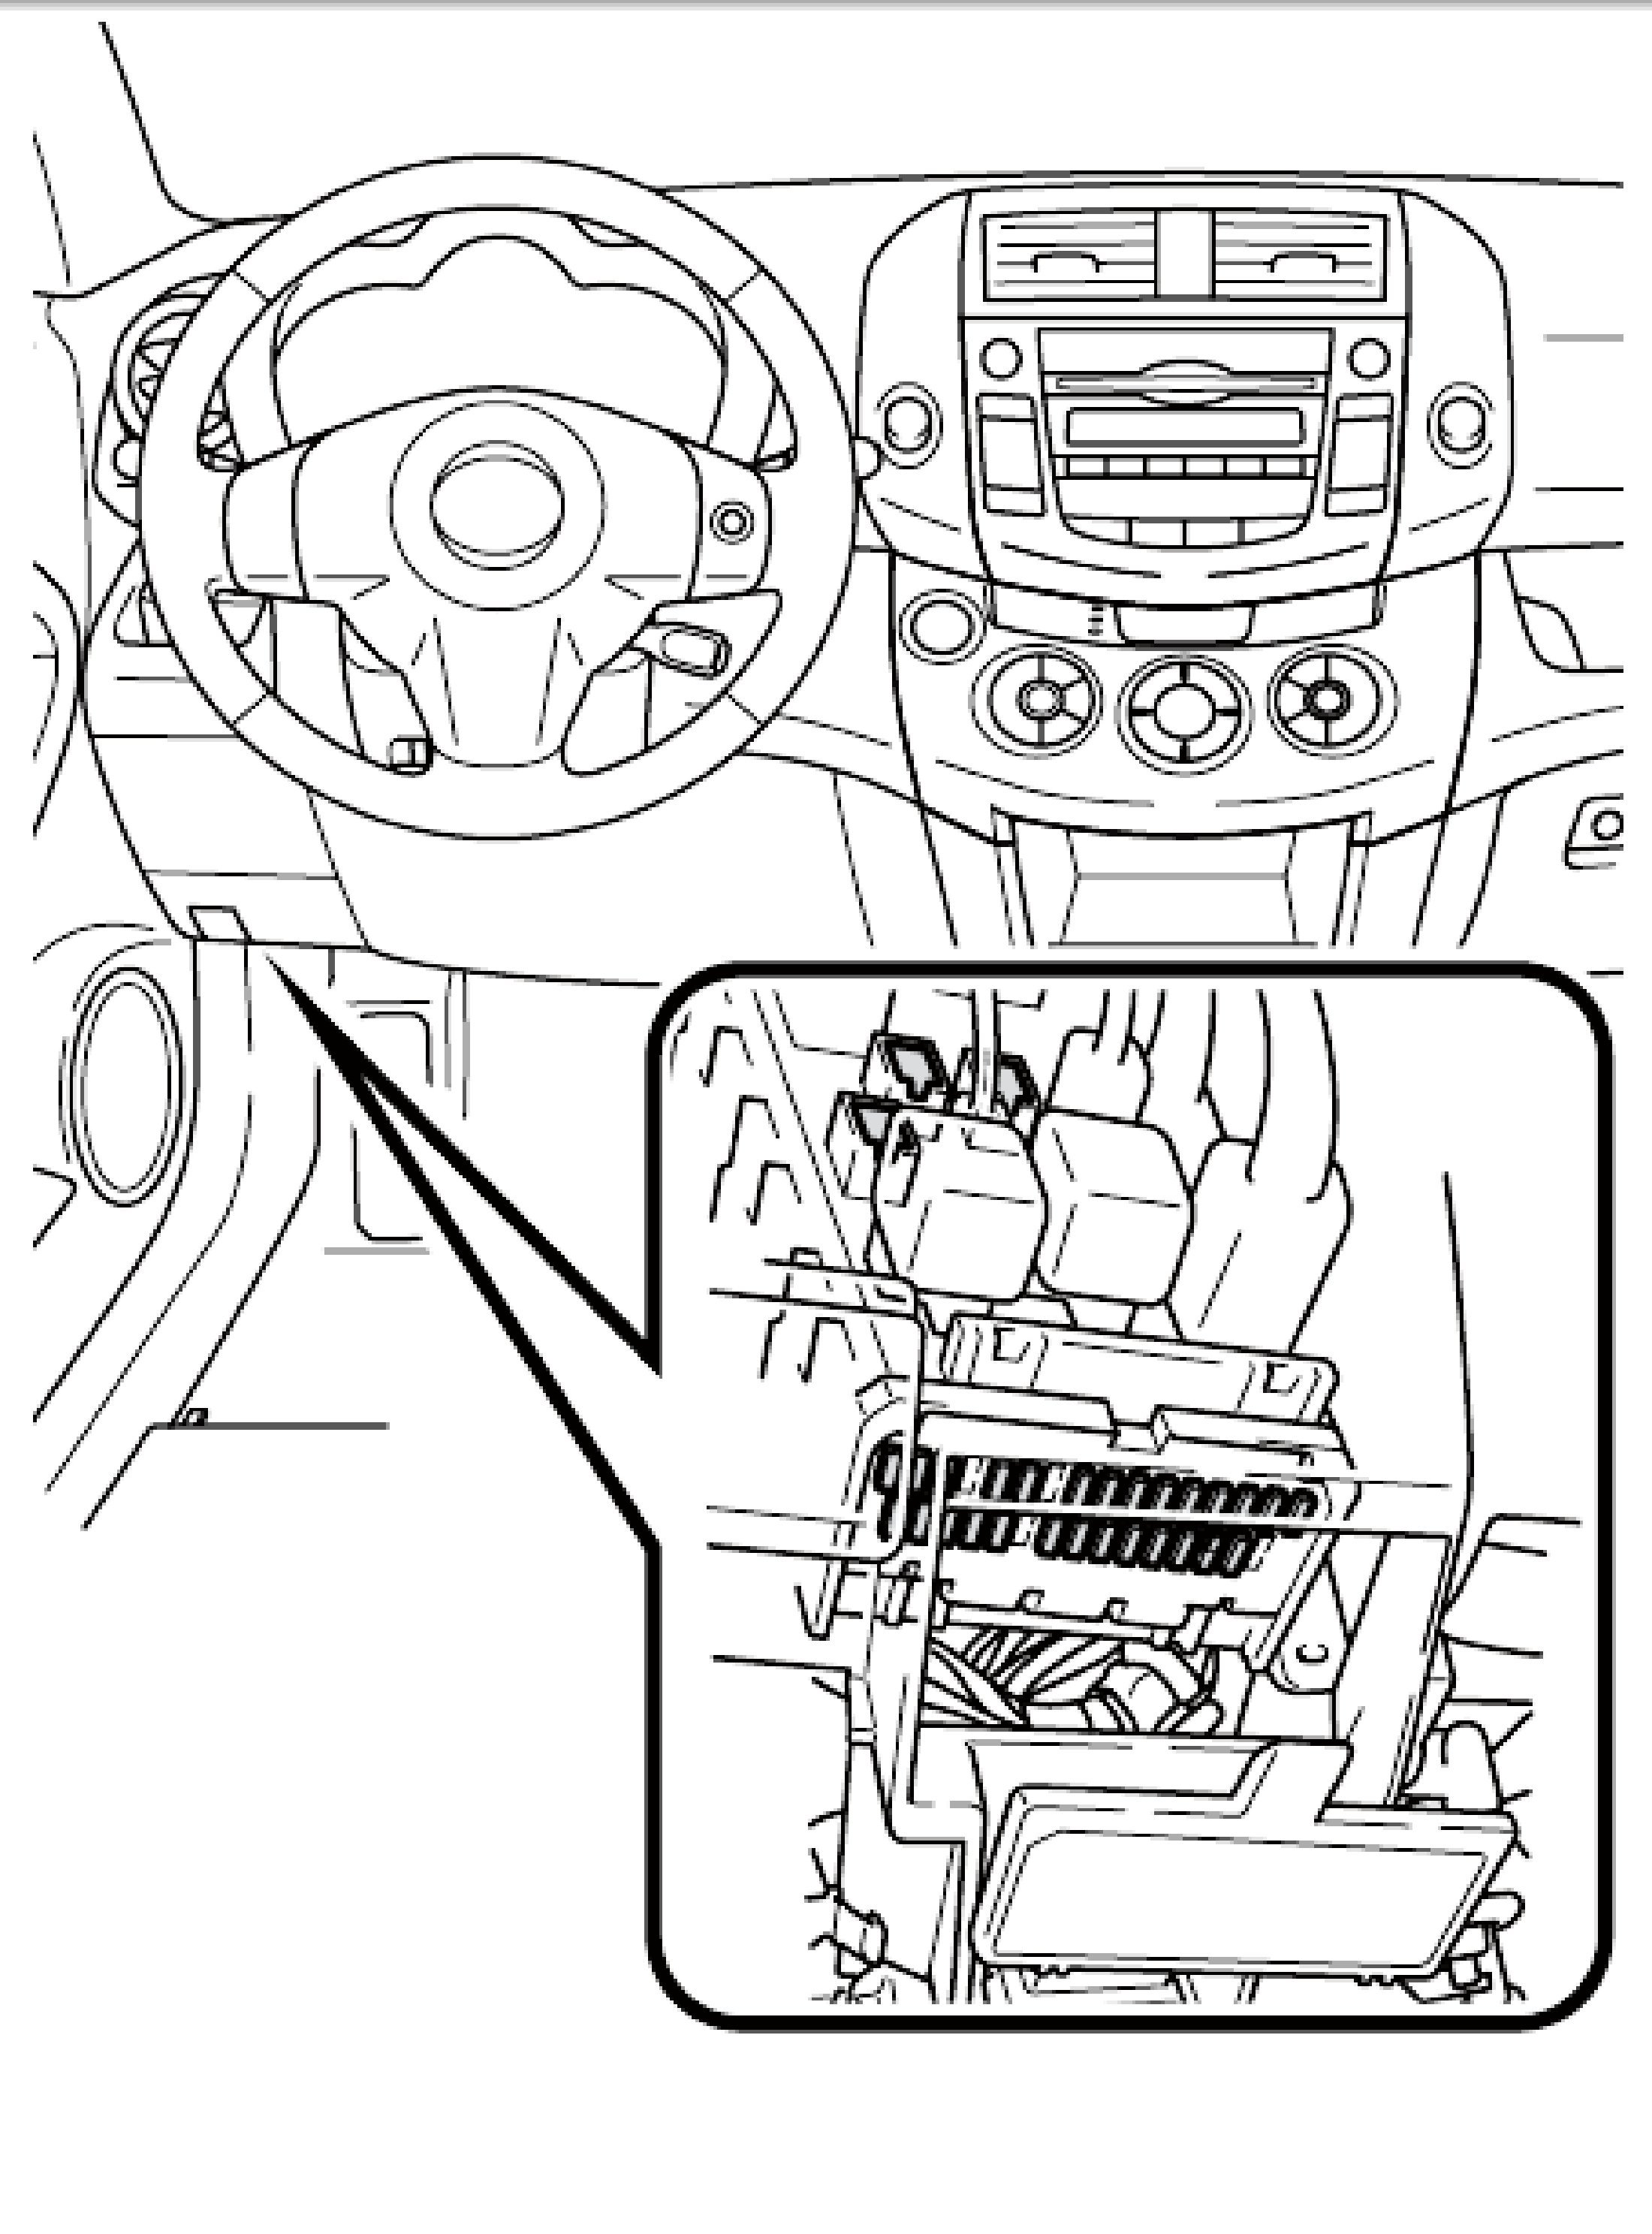 1994 toyota pickup fuse box diagram profibus connector wiring camry